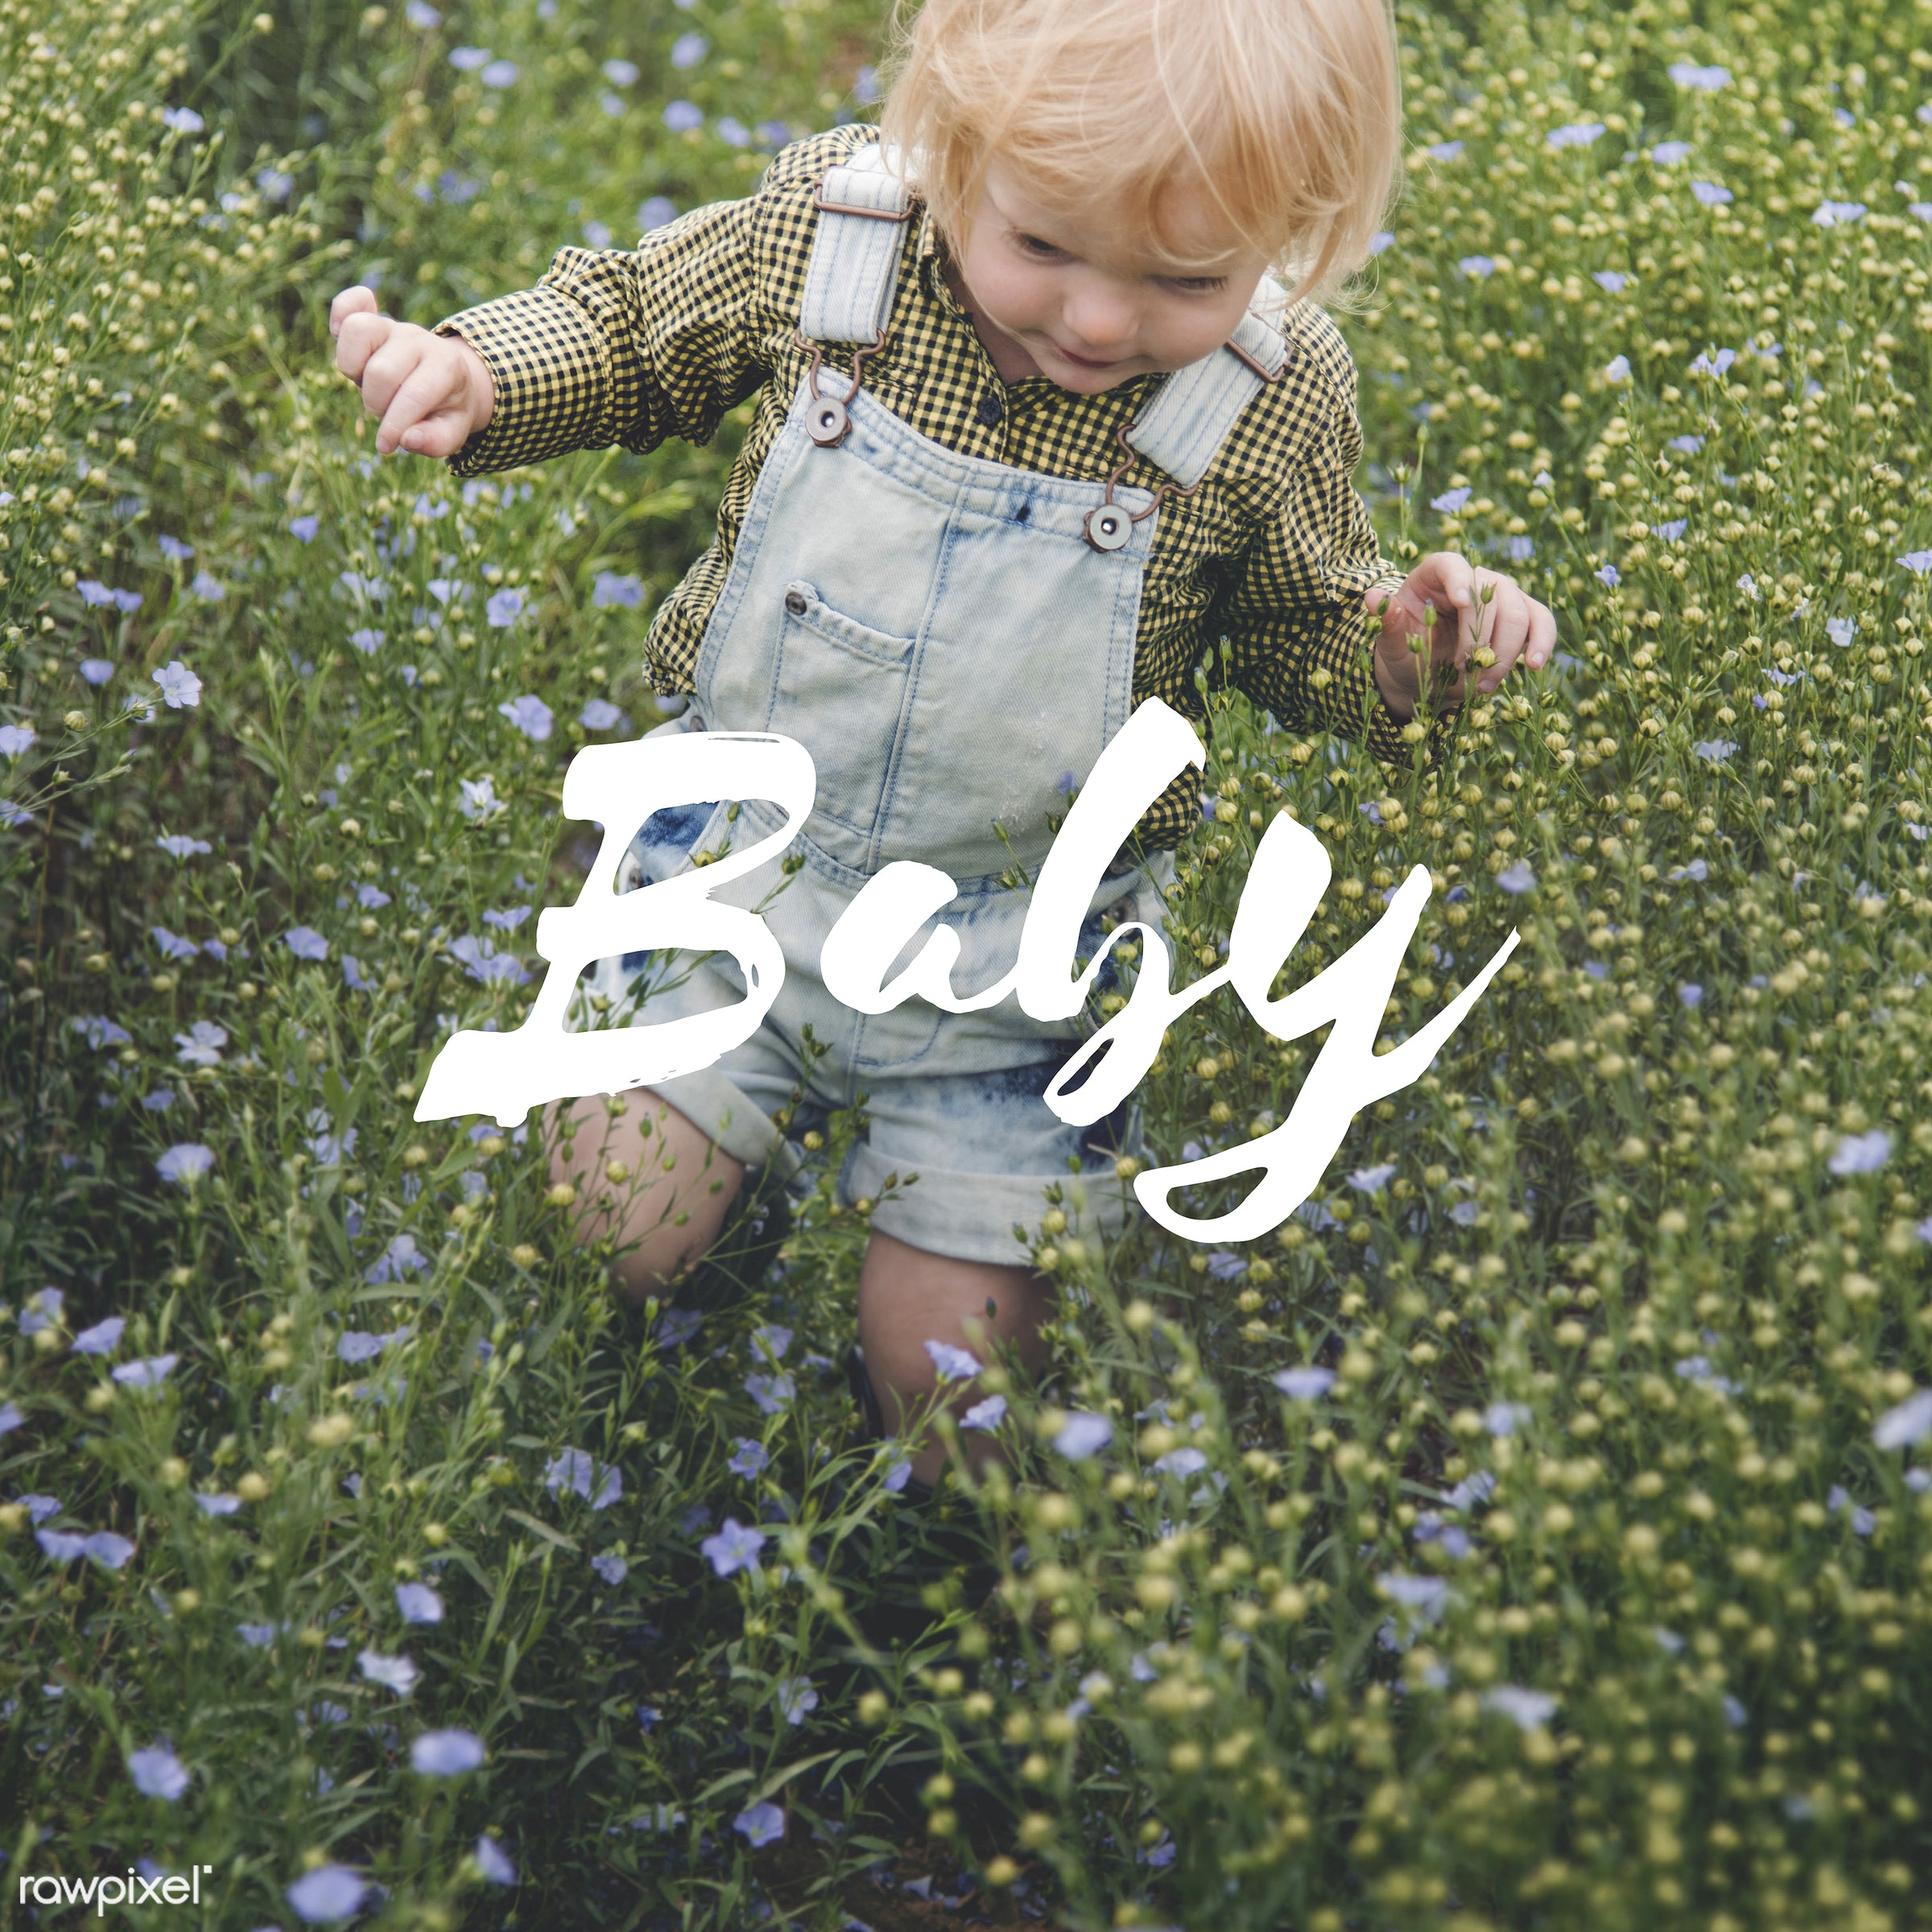 baby, adorable, blameless, blonde, boy, caucasian, child, childhood, children, curiosity, curious, cute, dungarees, flower...